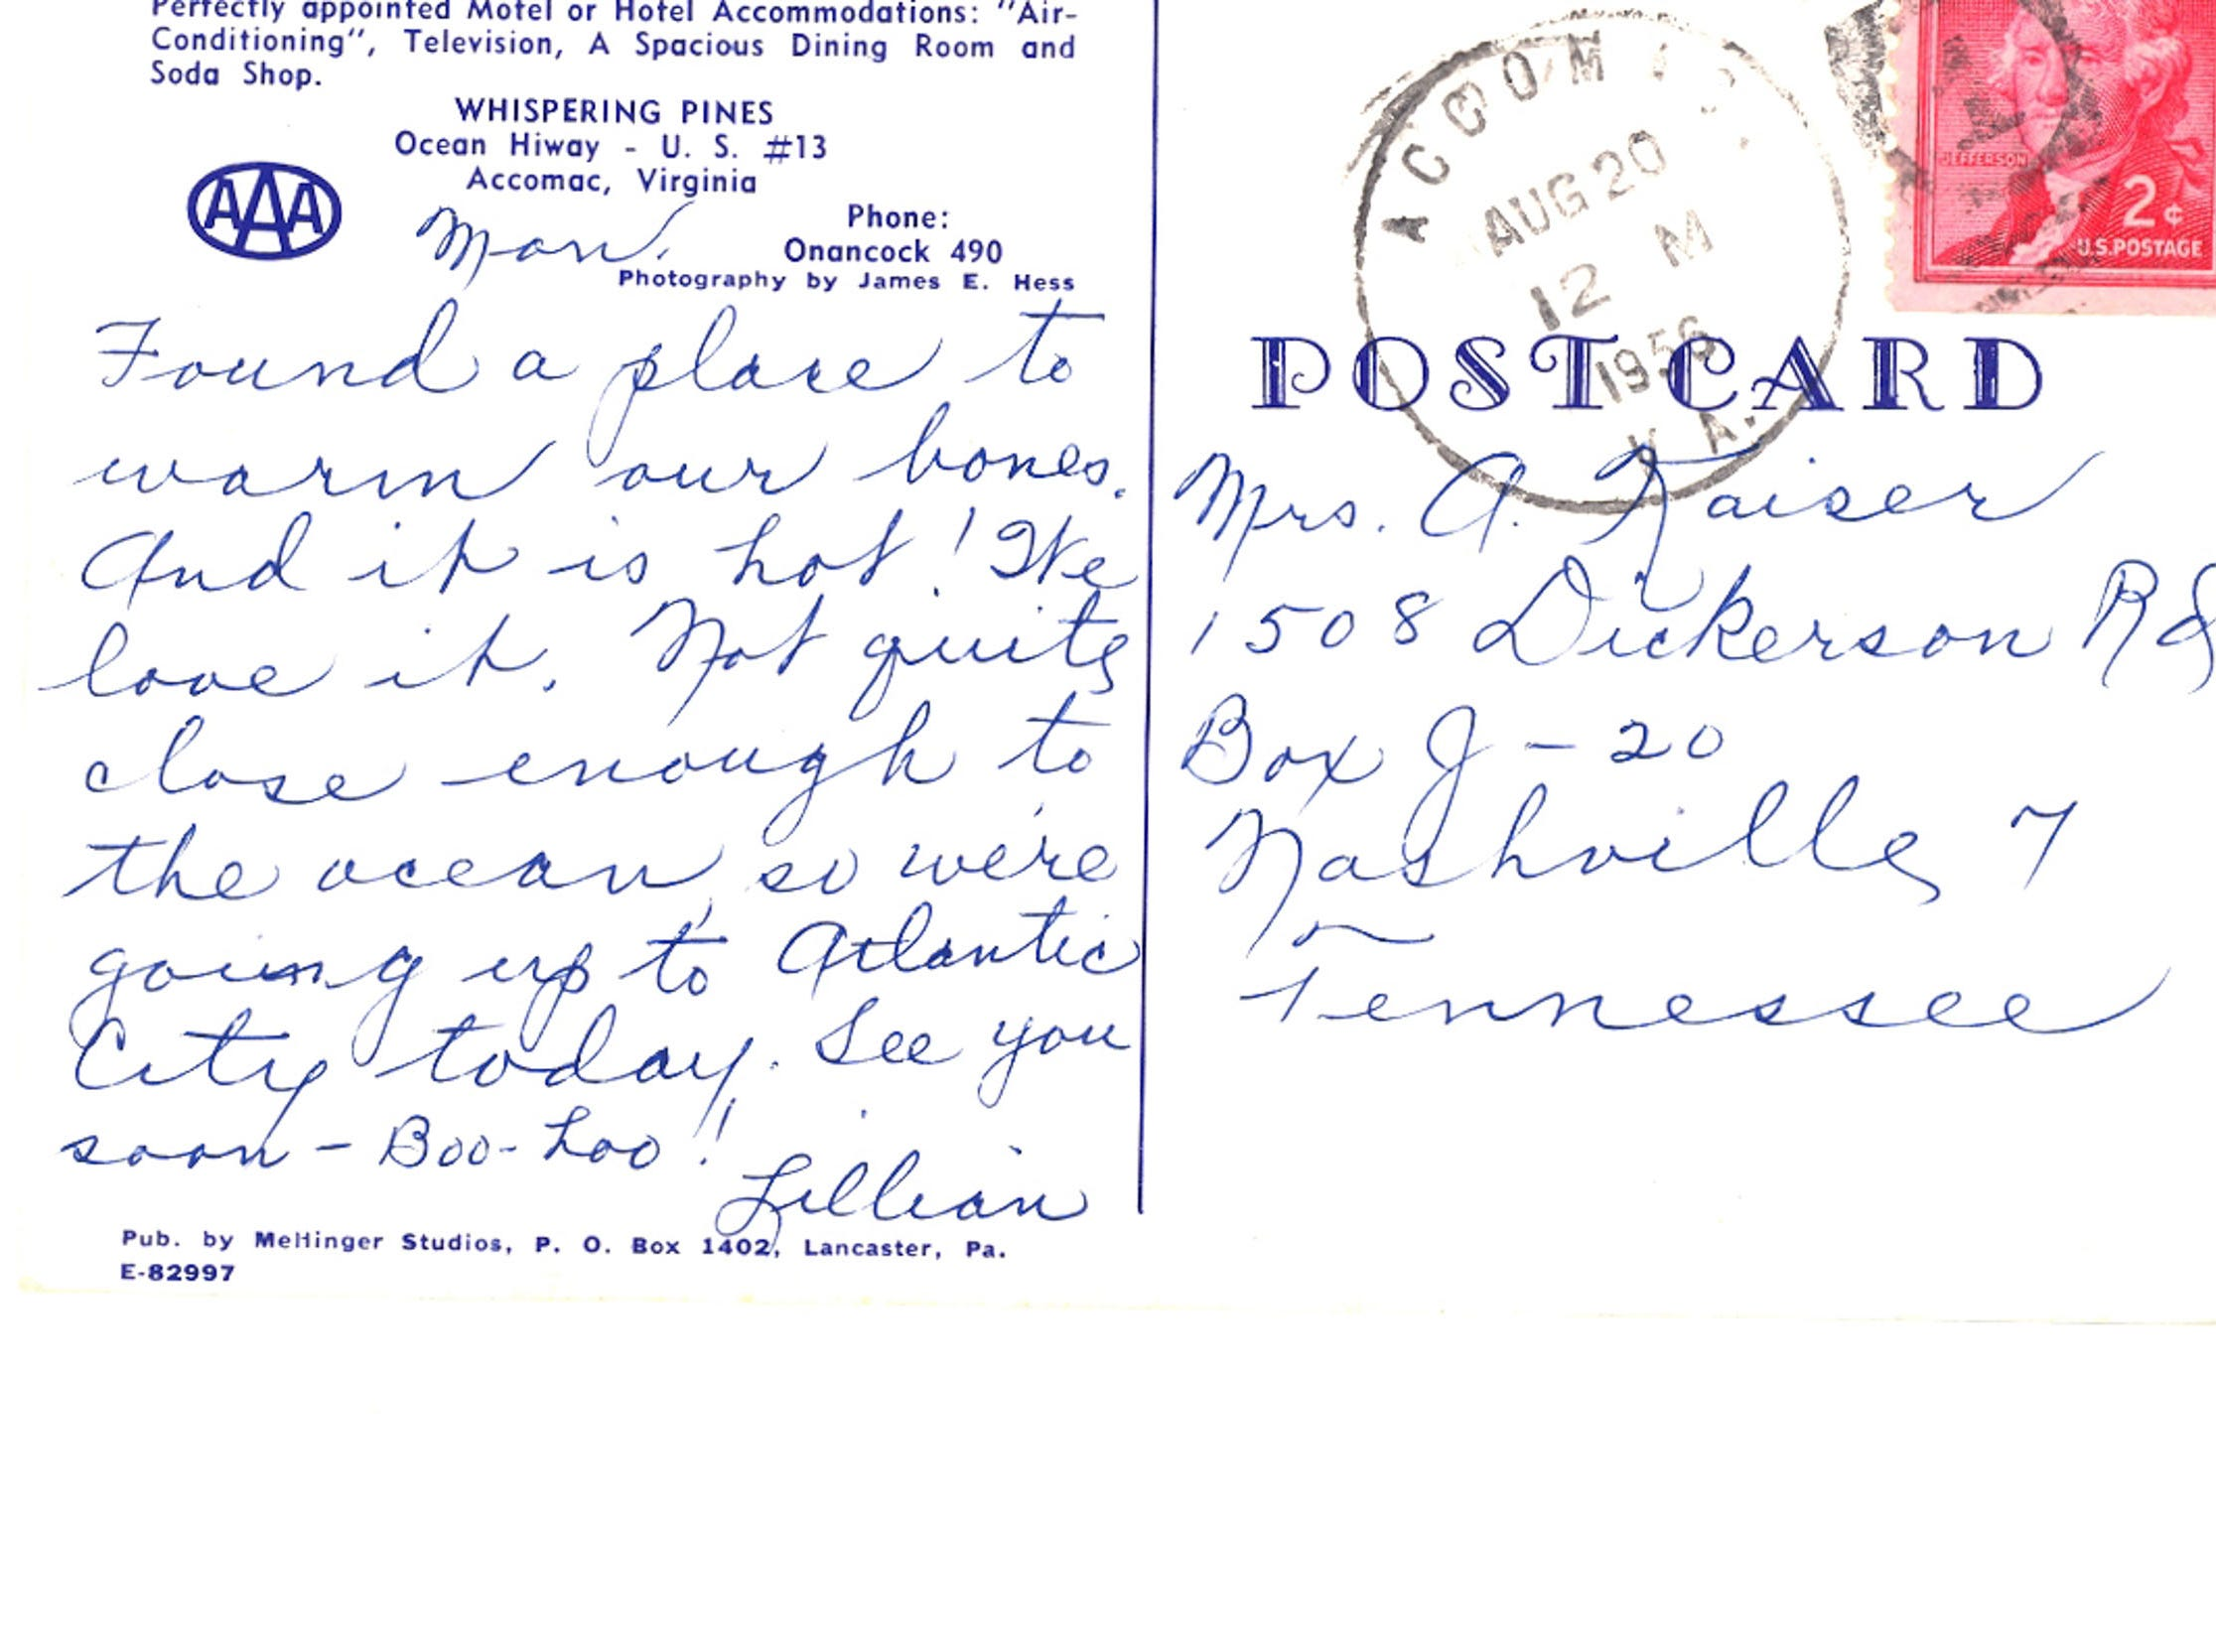 A 1950s postcard sent by a guest at the former Whispering Pines Motel in Tasley. When the family-run business opened in the 1930s, it was the only tourist destination from Dover south to Cape Charles. The mostly vacant motel was set on fire Tuesday, March 12, 2013. Investigators believe the fire to be the work of an arsonist who has set more than 65 fires since November.